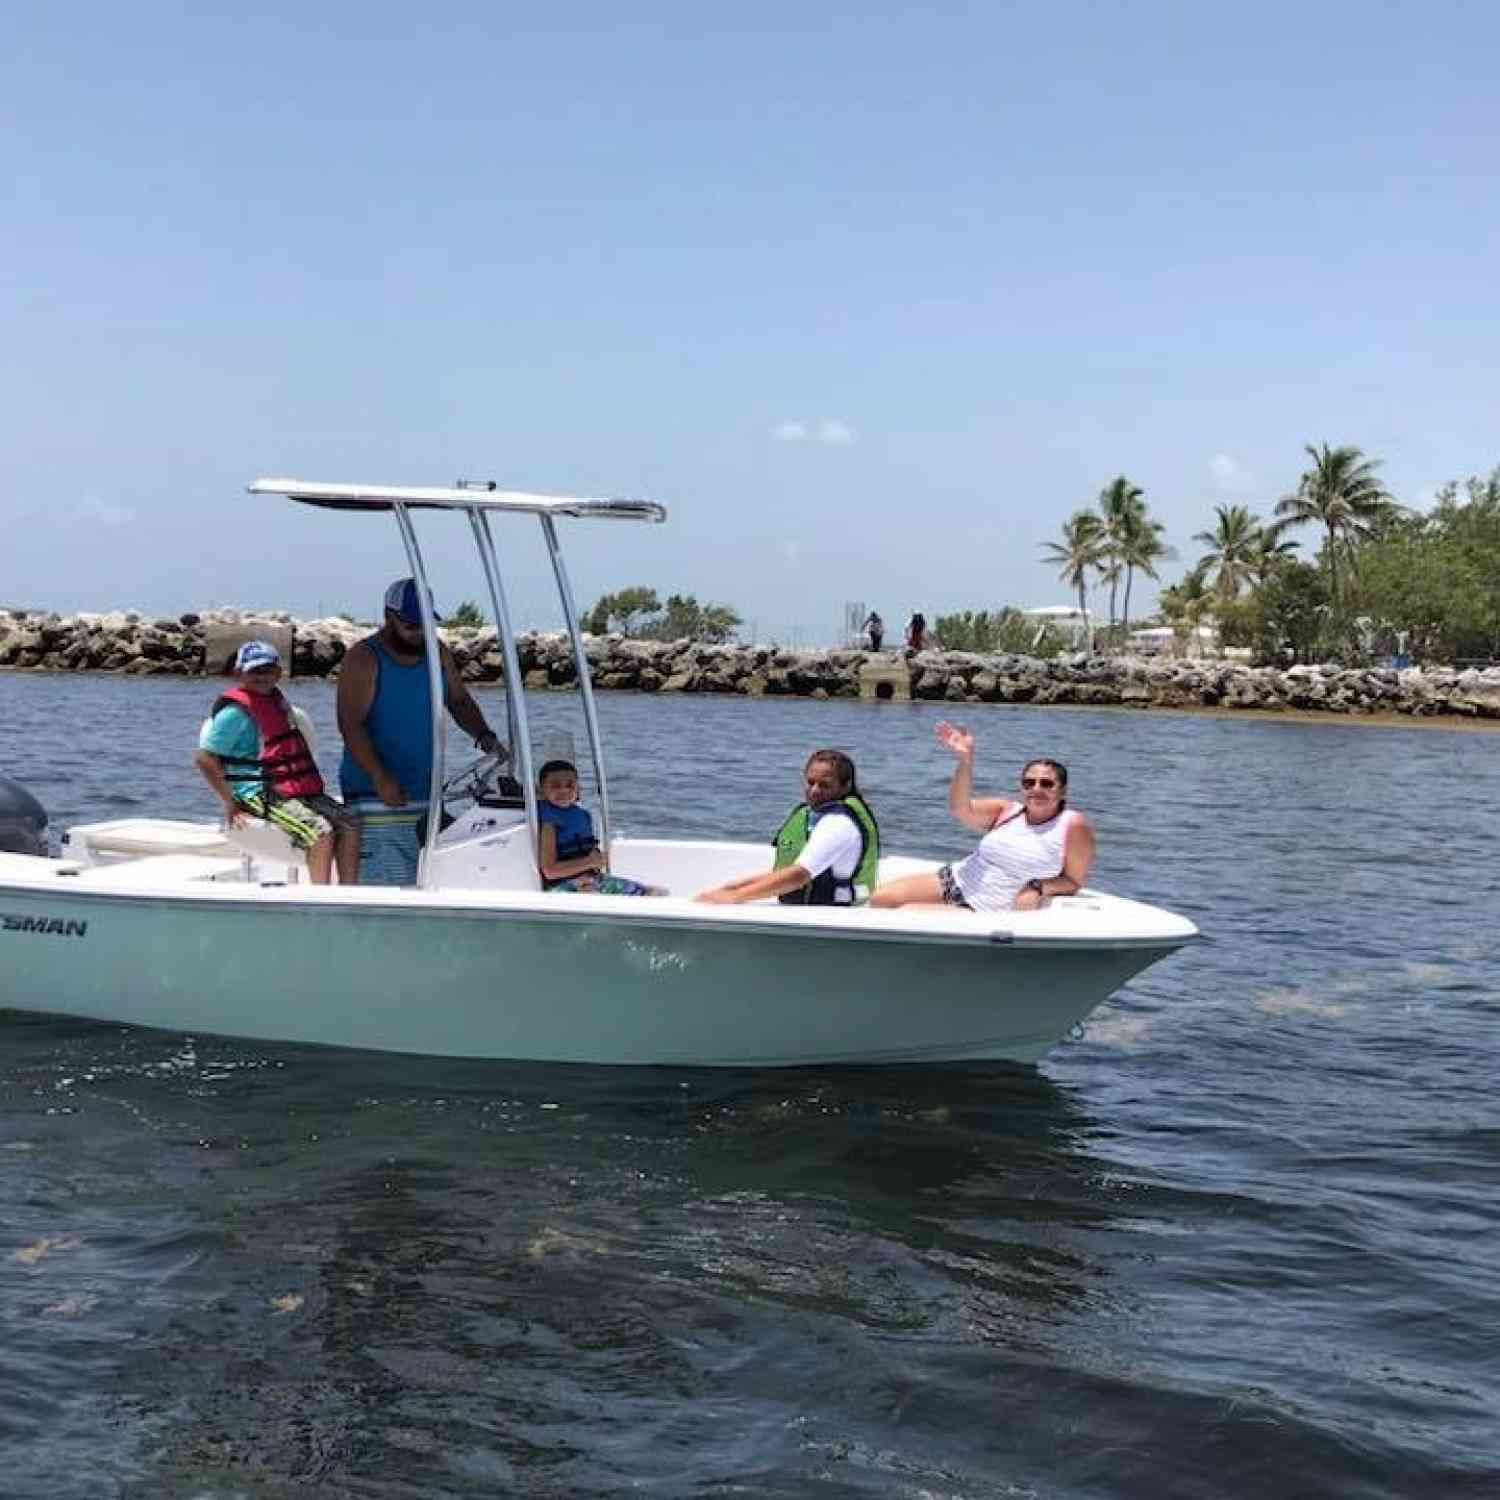 Title: Sportsman Fun in the Keys - On board their Sportsman Island Reef 17 Center Console - Location: Key Largo, Fl. Participating in the Photo Contest #SportsmanNovember2018